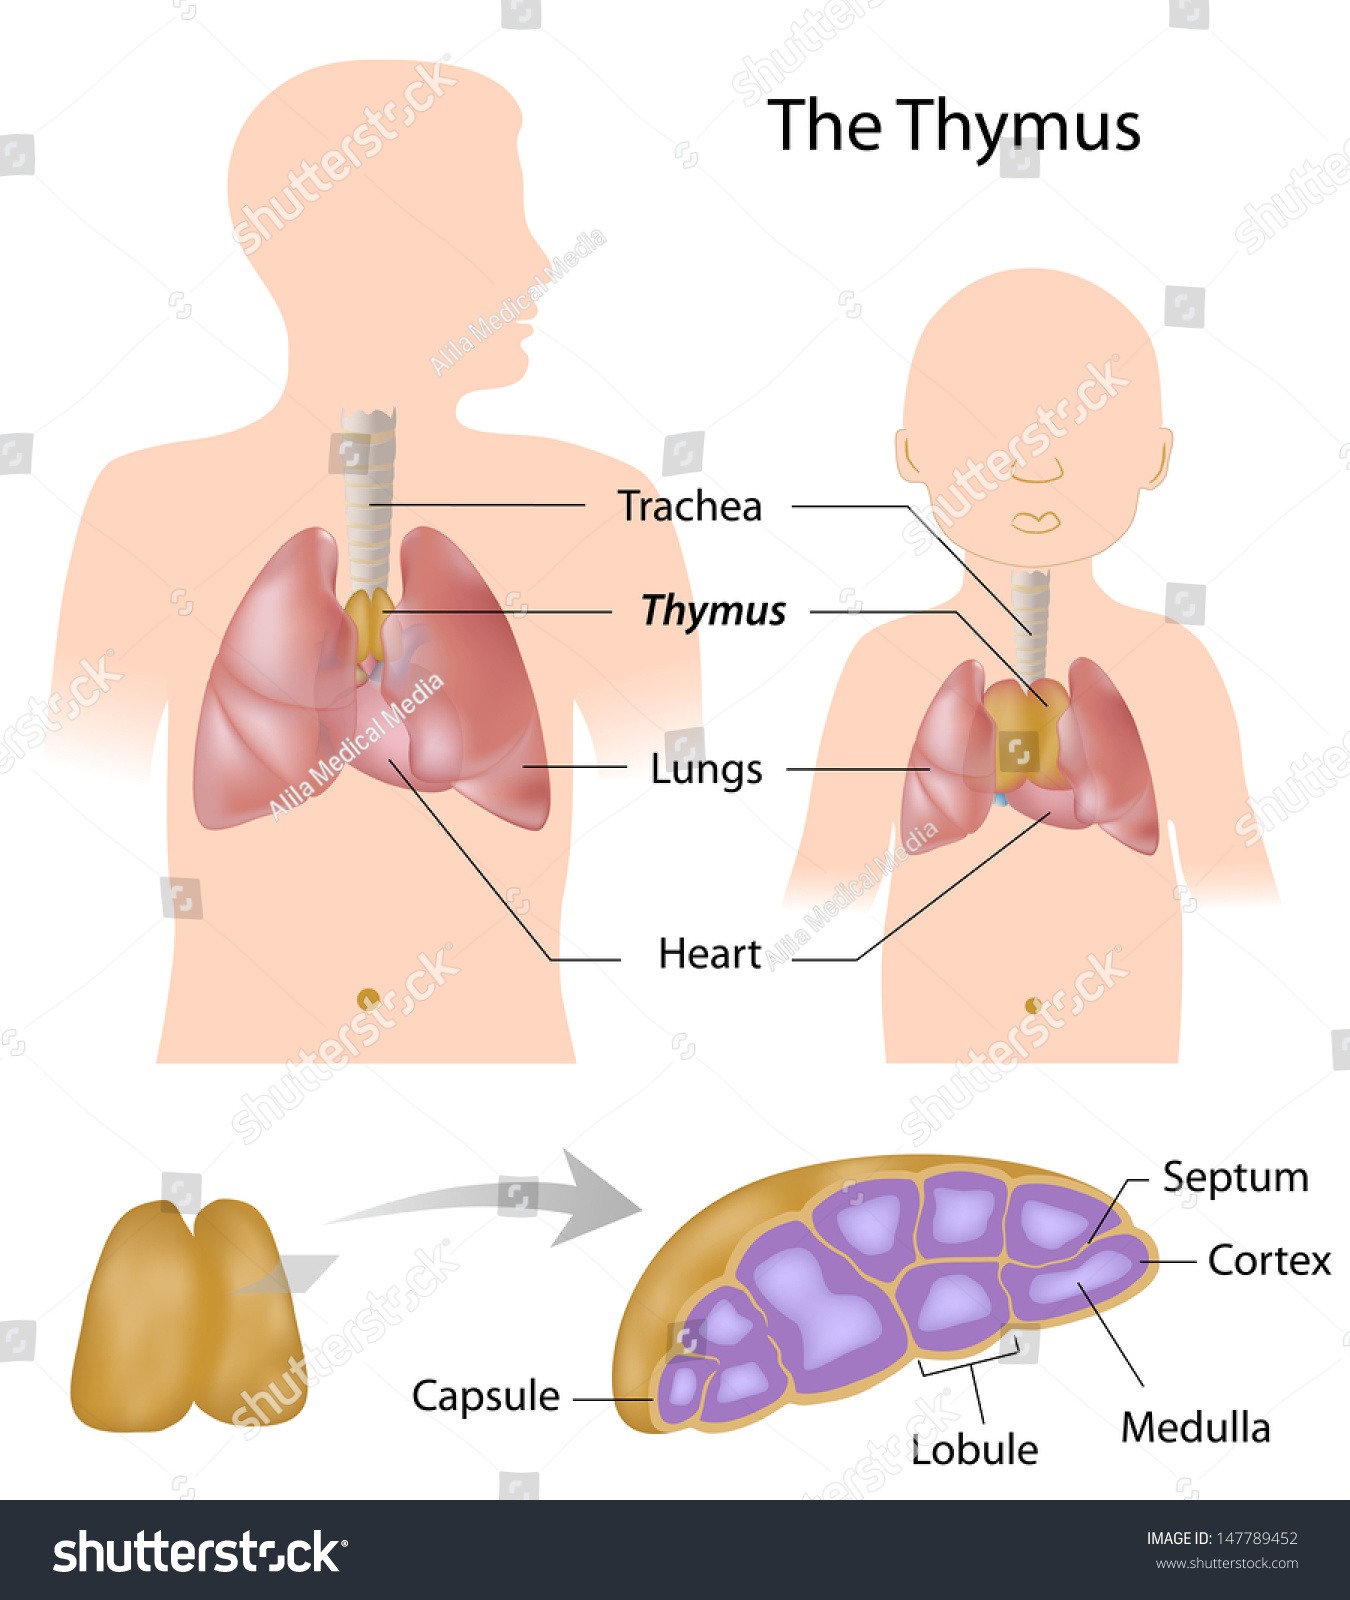 Thymus Gland Anatomy Stock Illustration 147789452 Shutterstock